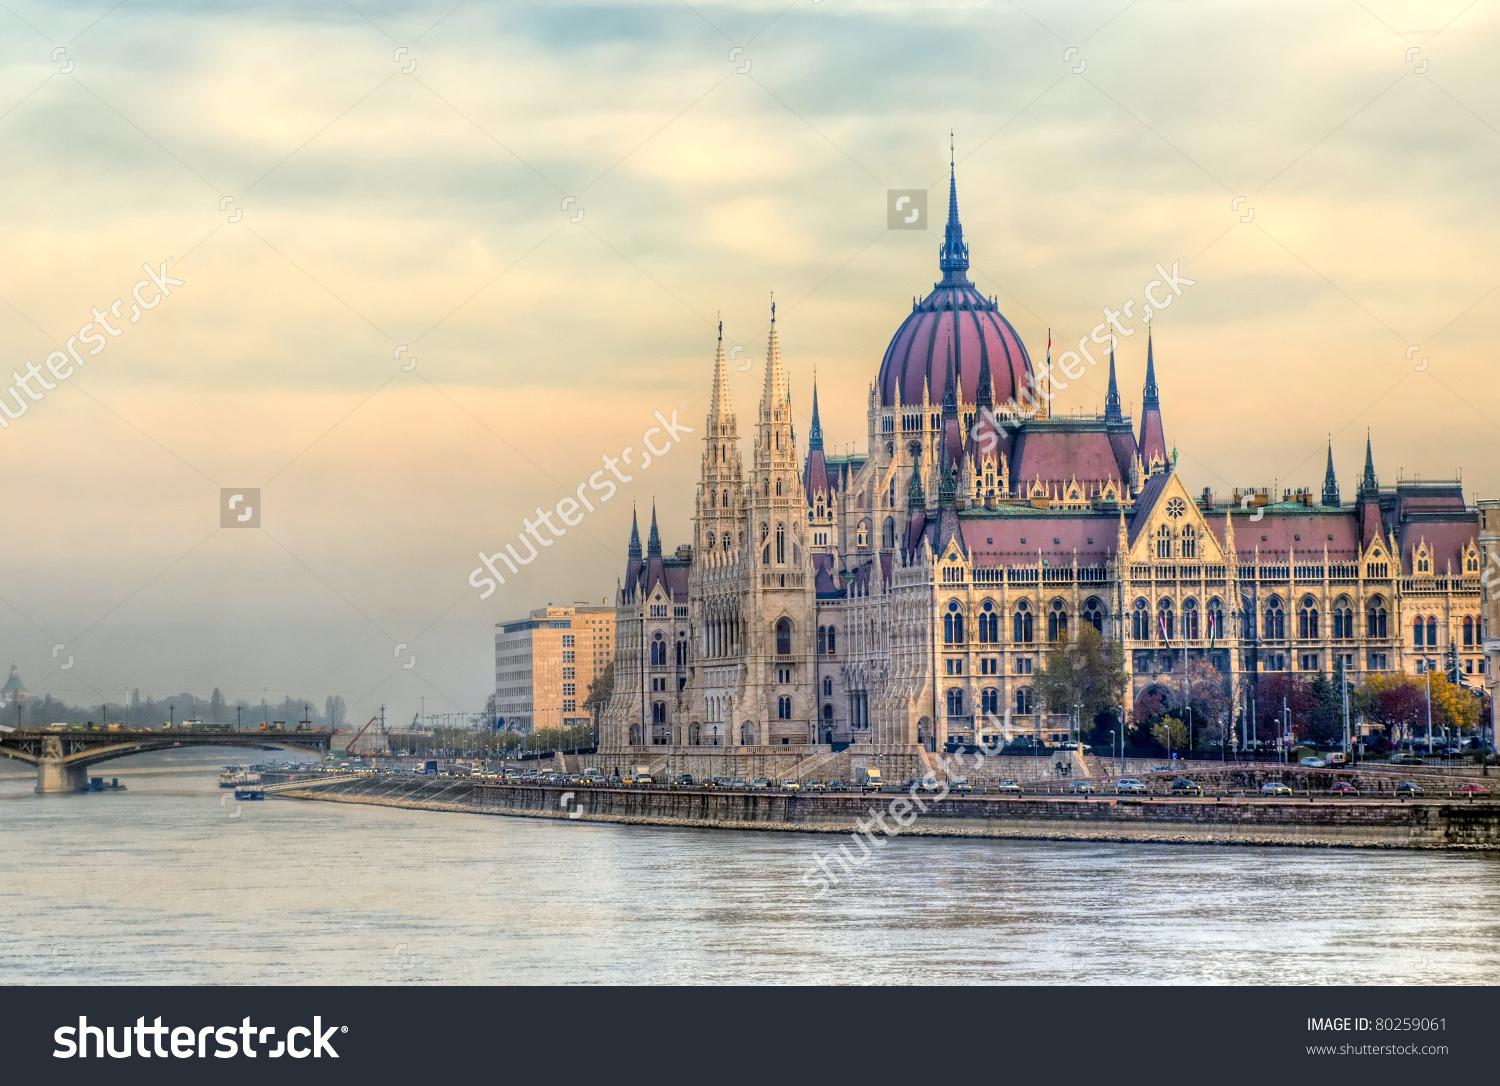 View Hungarian Parliament Building Budapest Hungary Stock Photo.